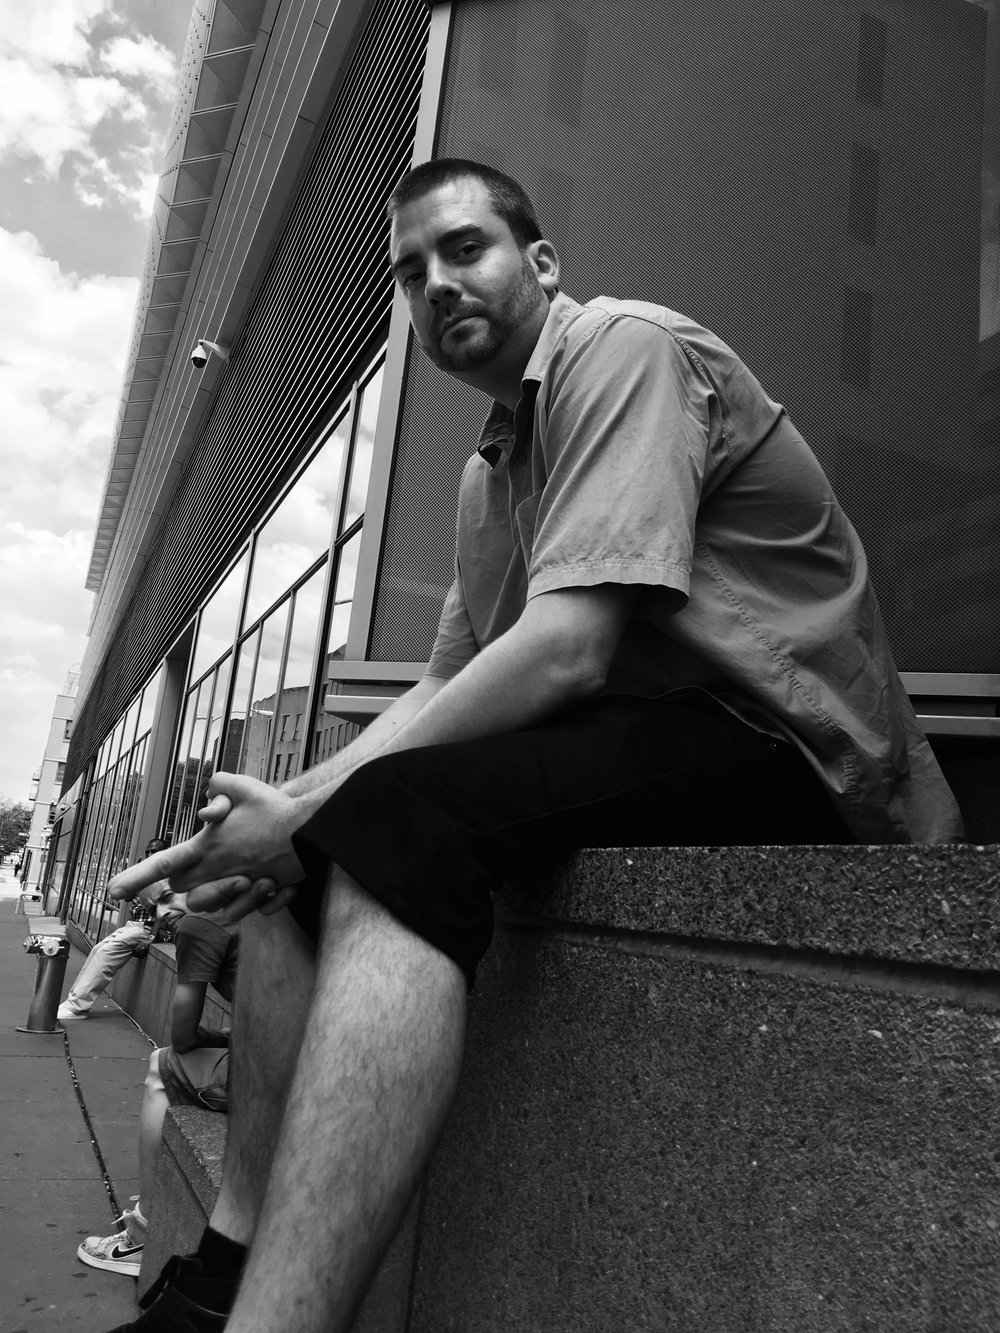 Anton waiting outside the Bronx Criminal Court.